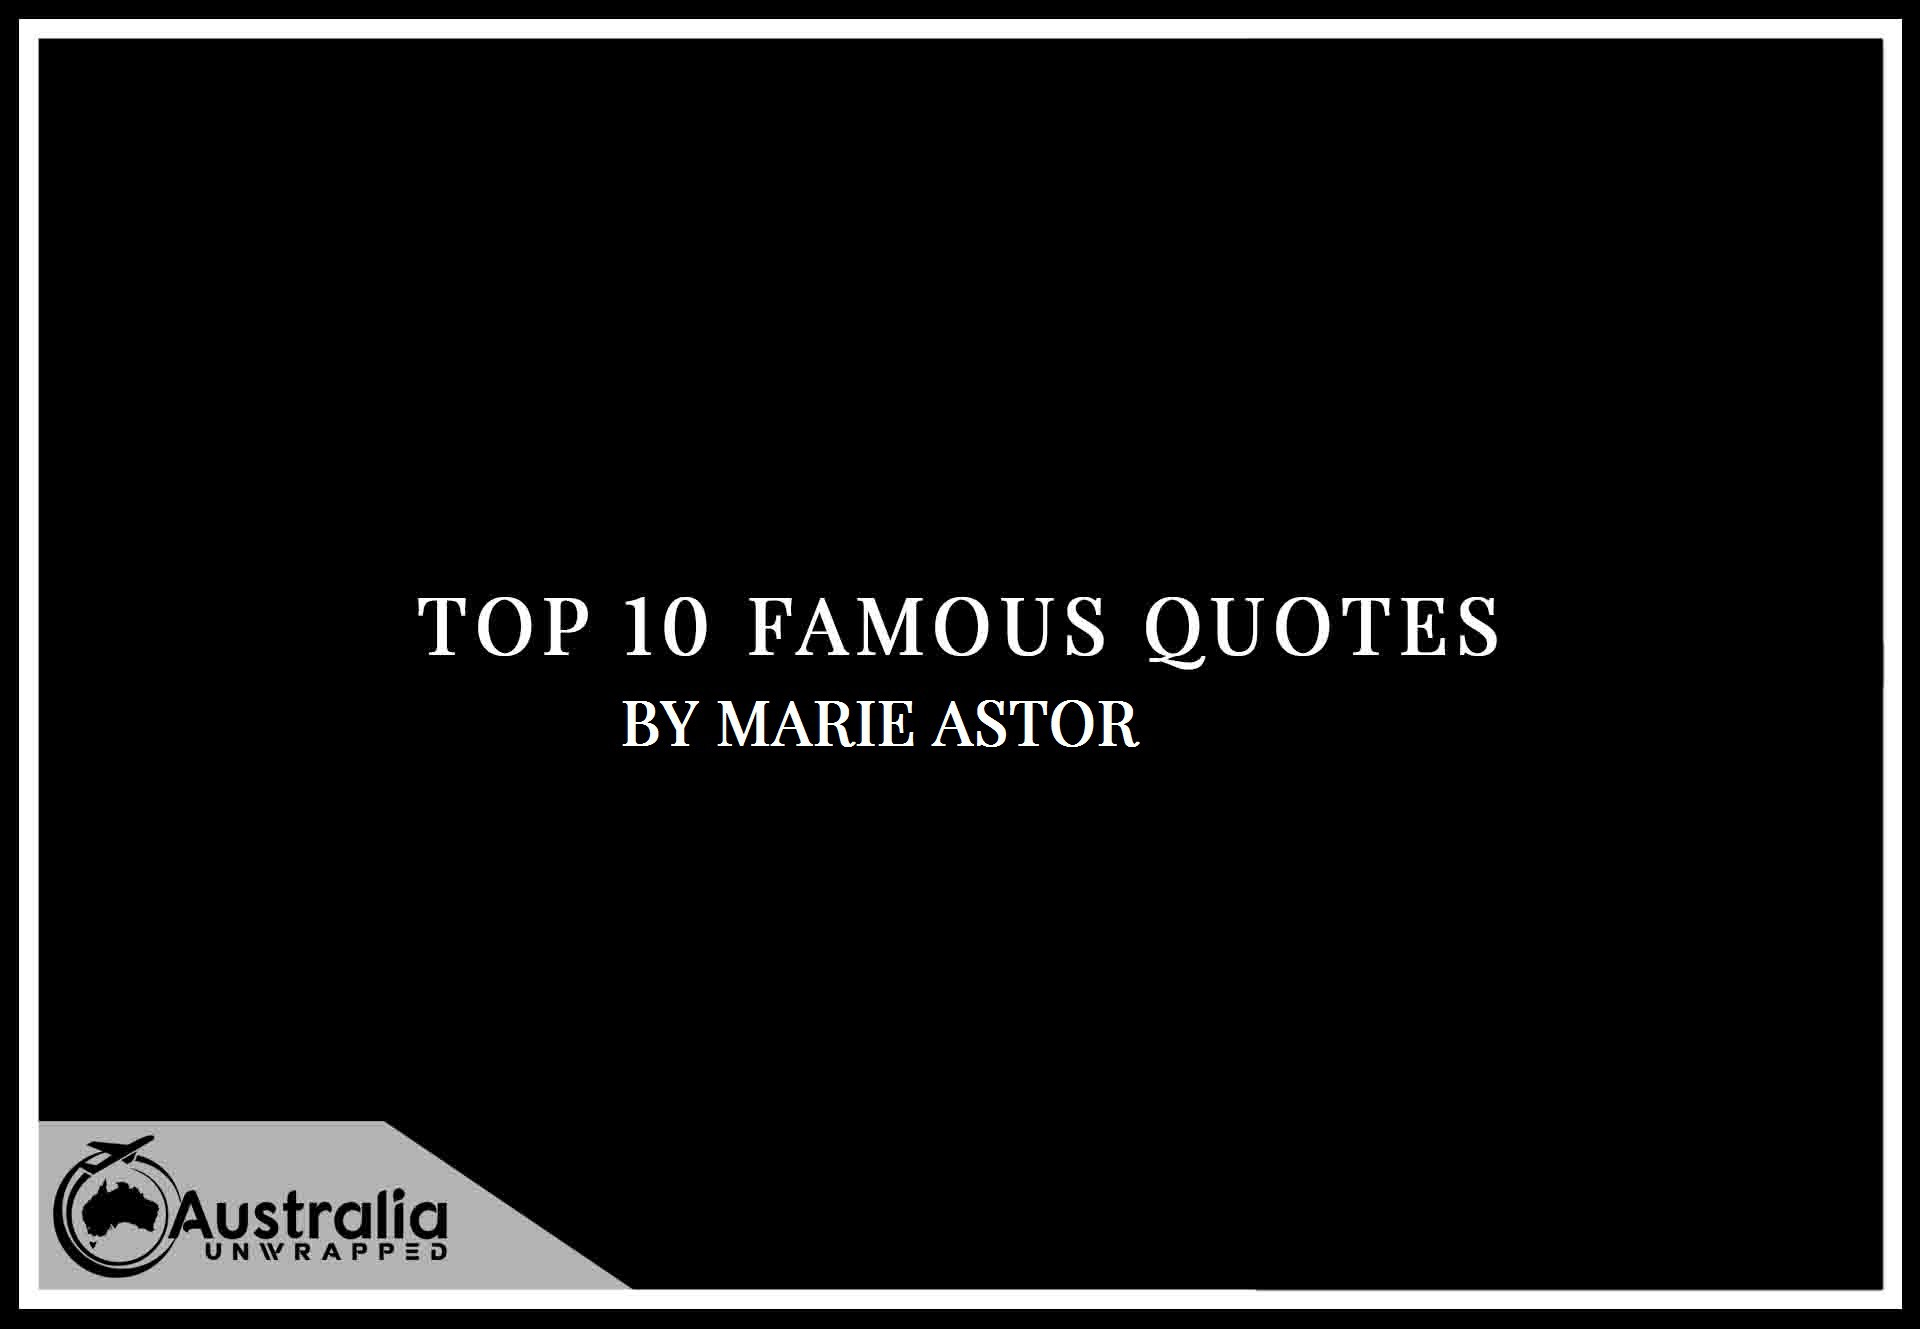 Marie Astor's Top 10 Popular and Famous Quotes